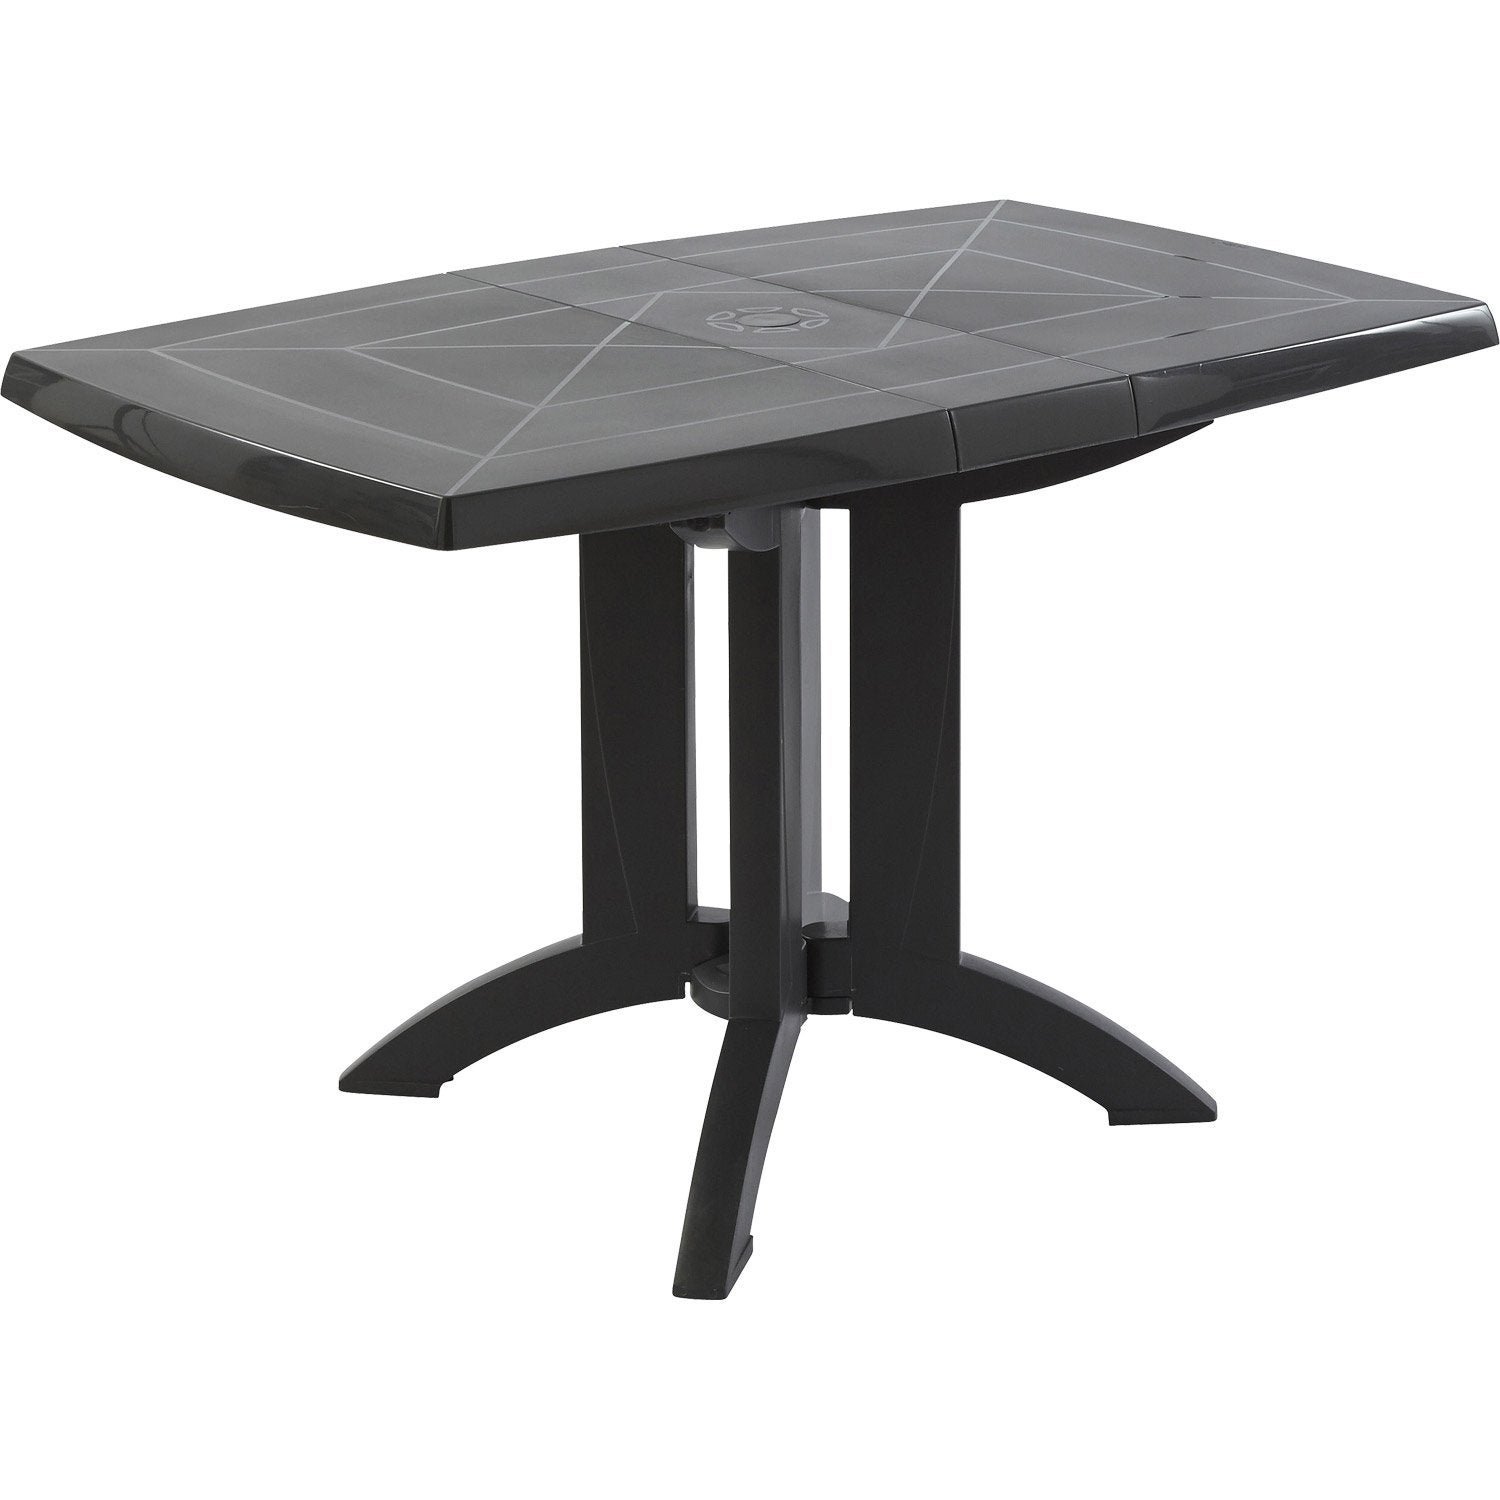 Table de jardin grosfillex v ga rectangulaire anthracite 4 for Blanche porte salon de jardin